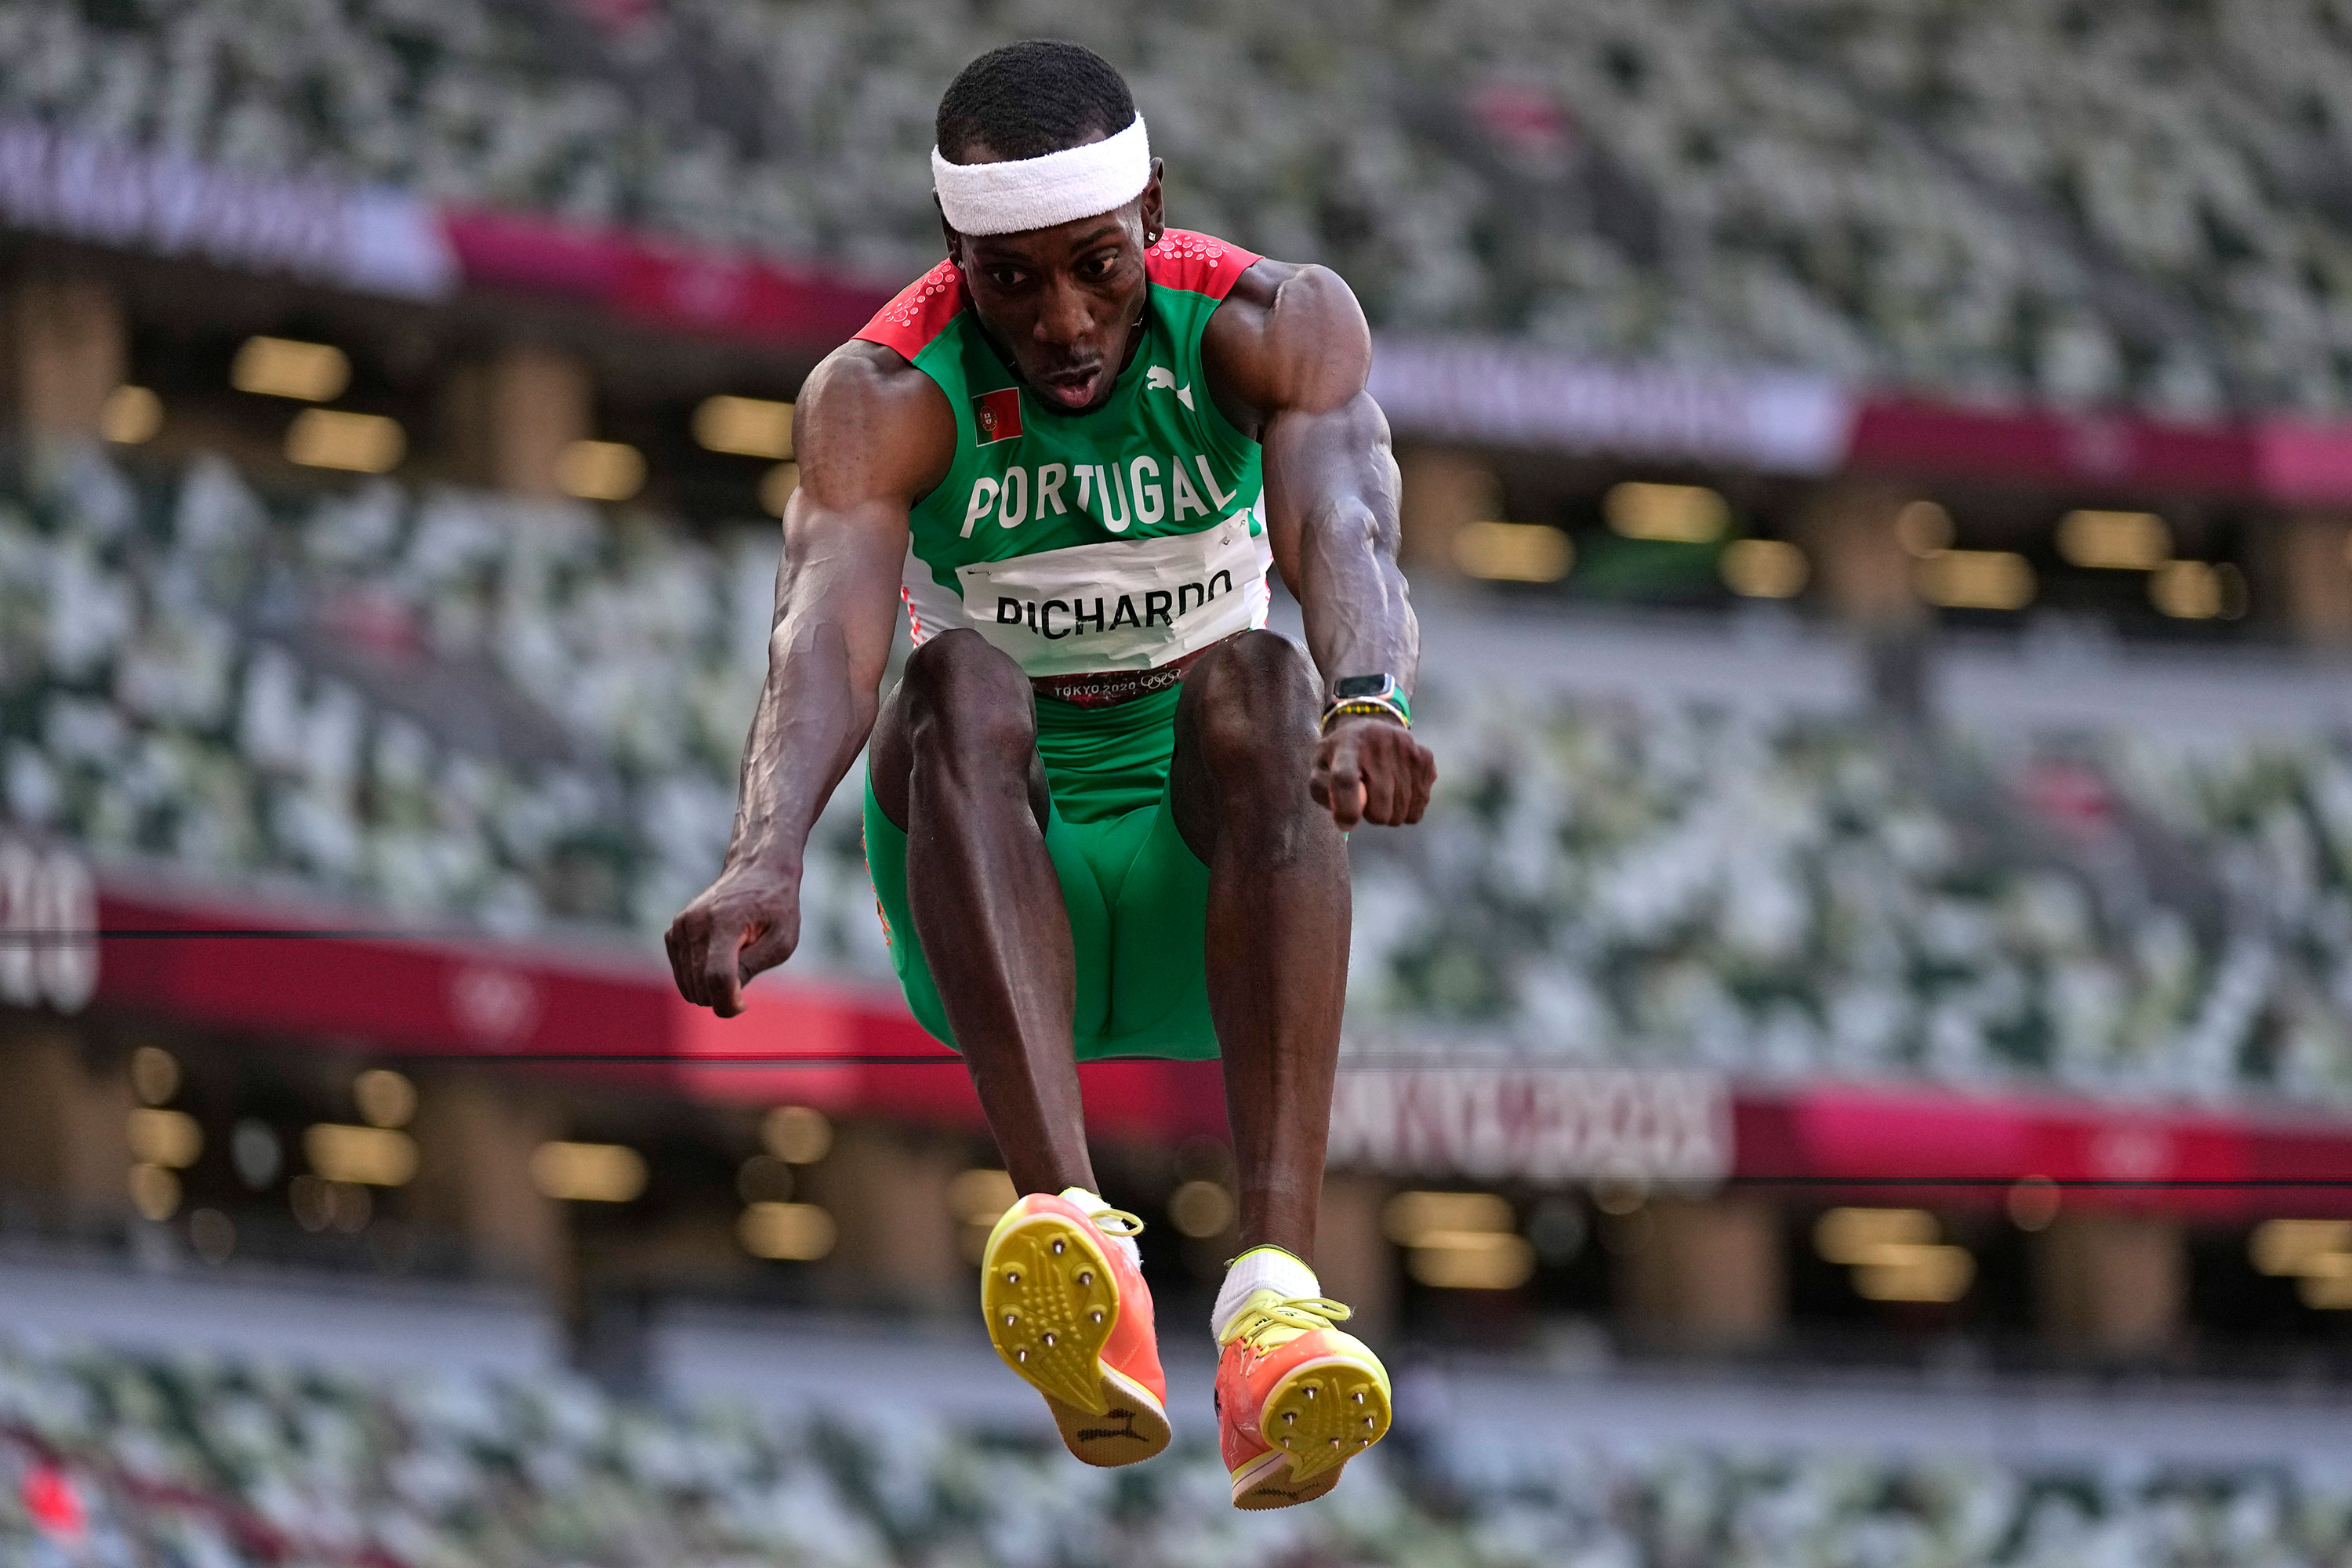 Pedro Pichardo of Portugal competes in the triple jump final on August 5.